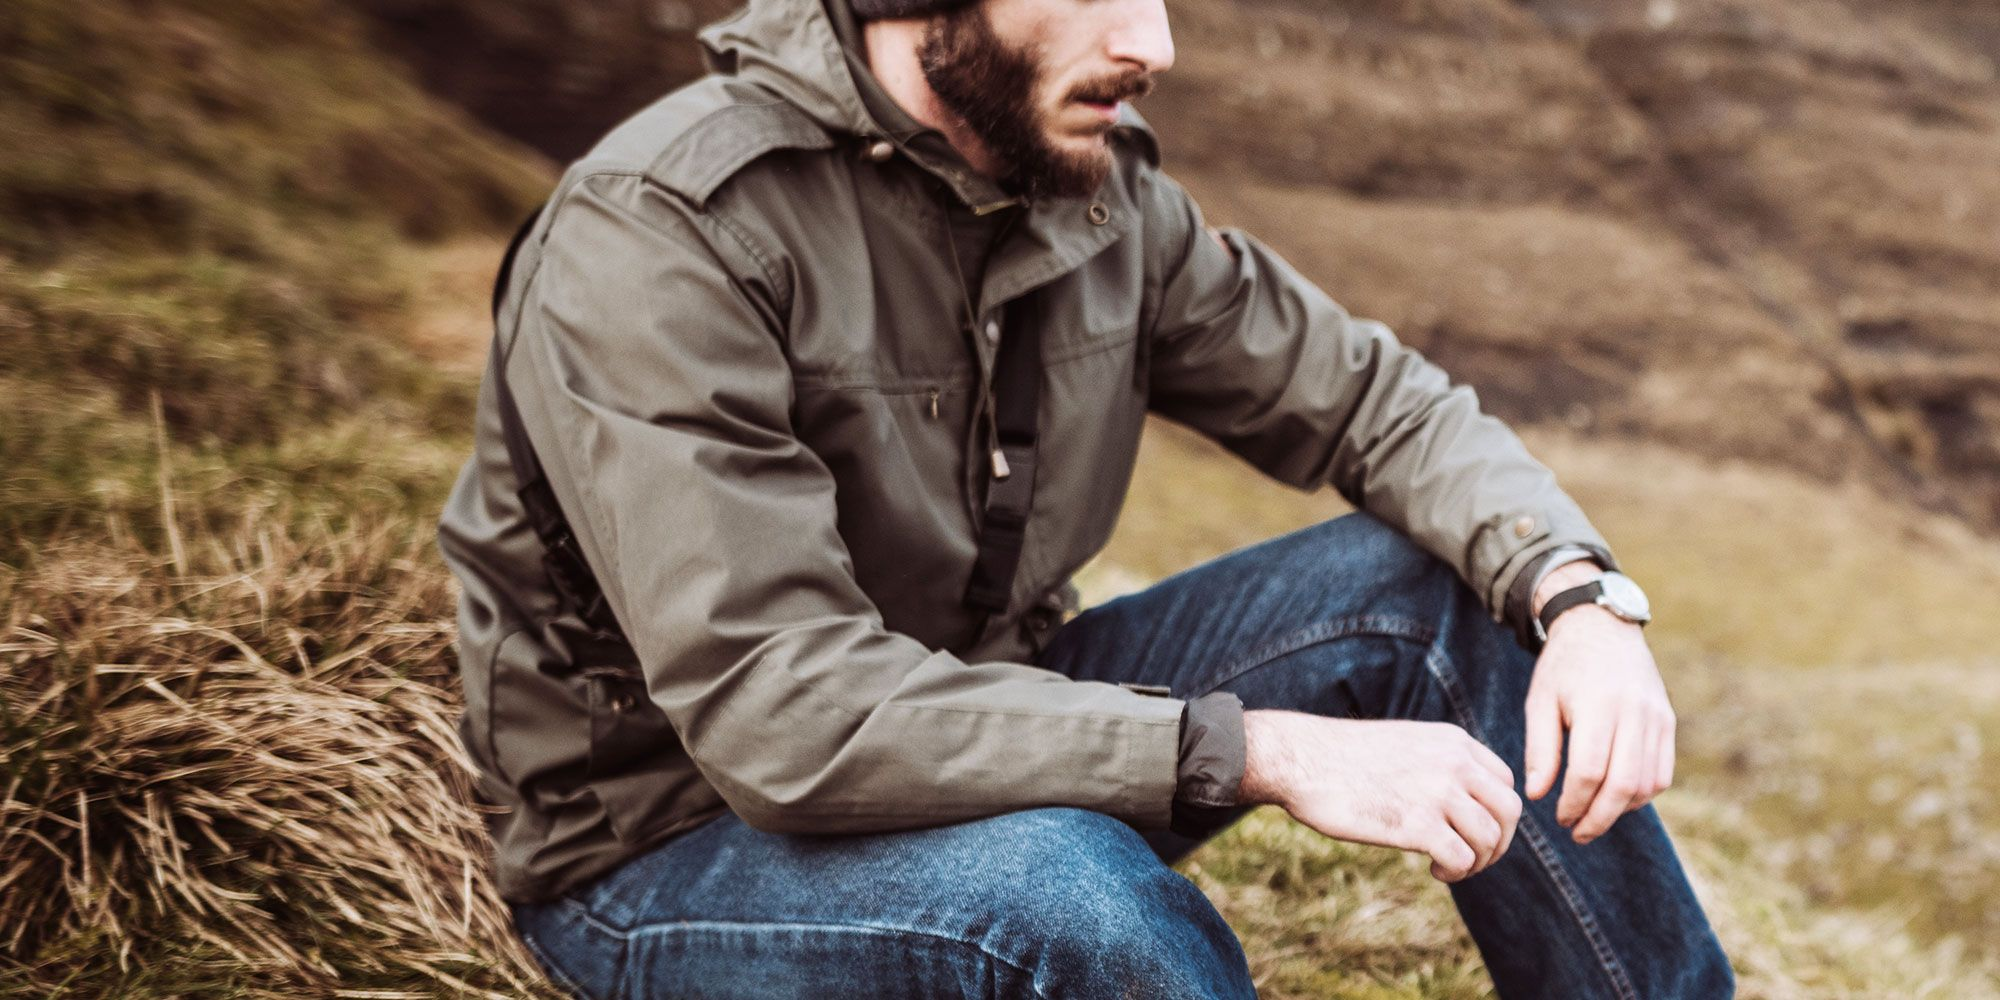 The 11 Best Hiking Jackets for Men to Brave the Elements